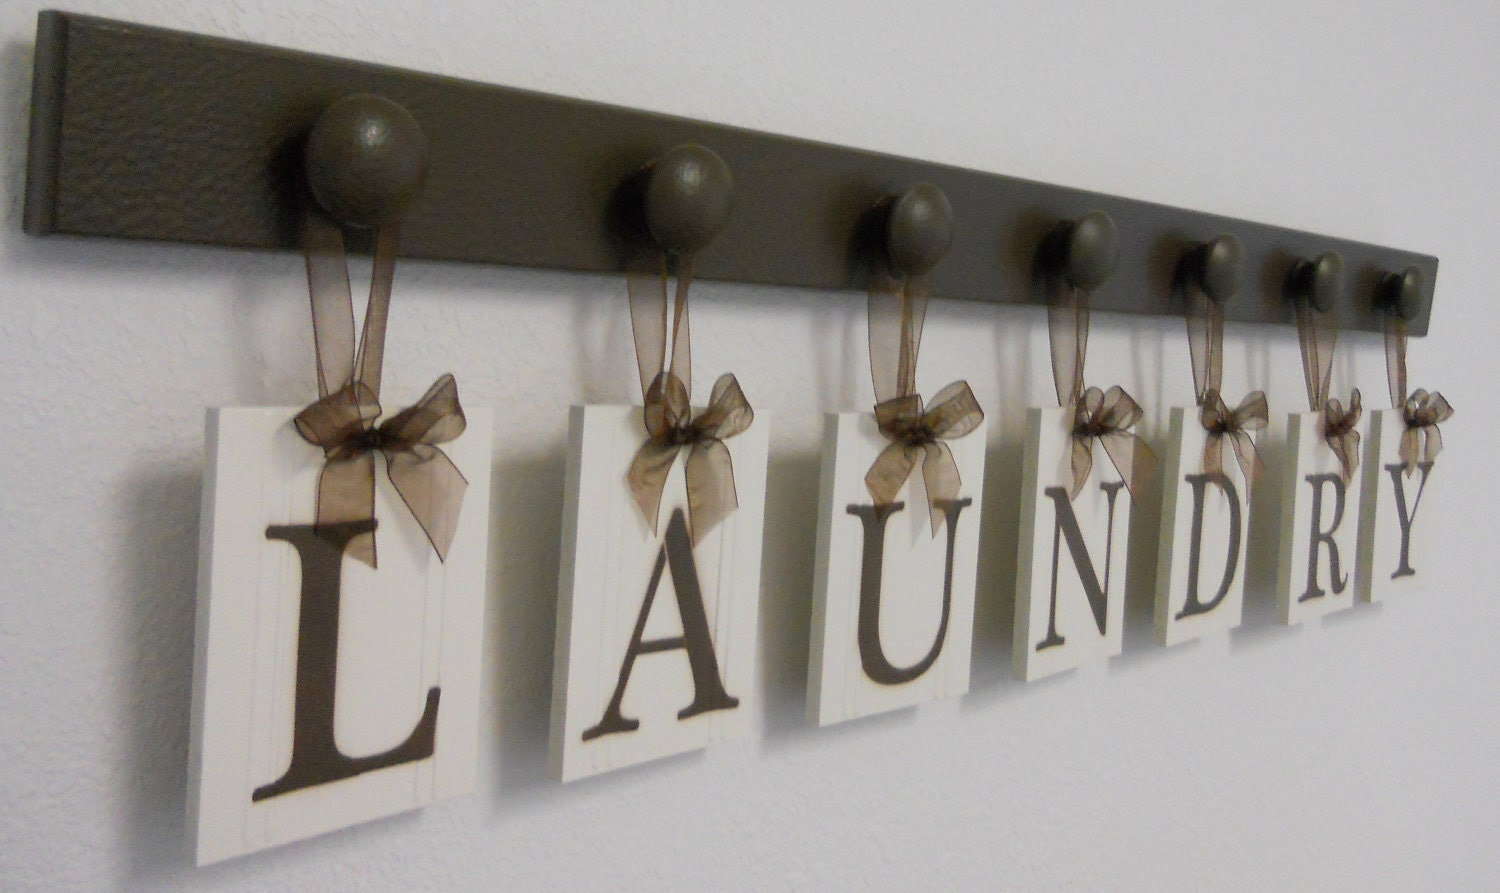 Laundry Room Wall Decor Personalized Hanging by NelsonsGifts